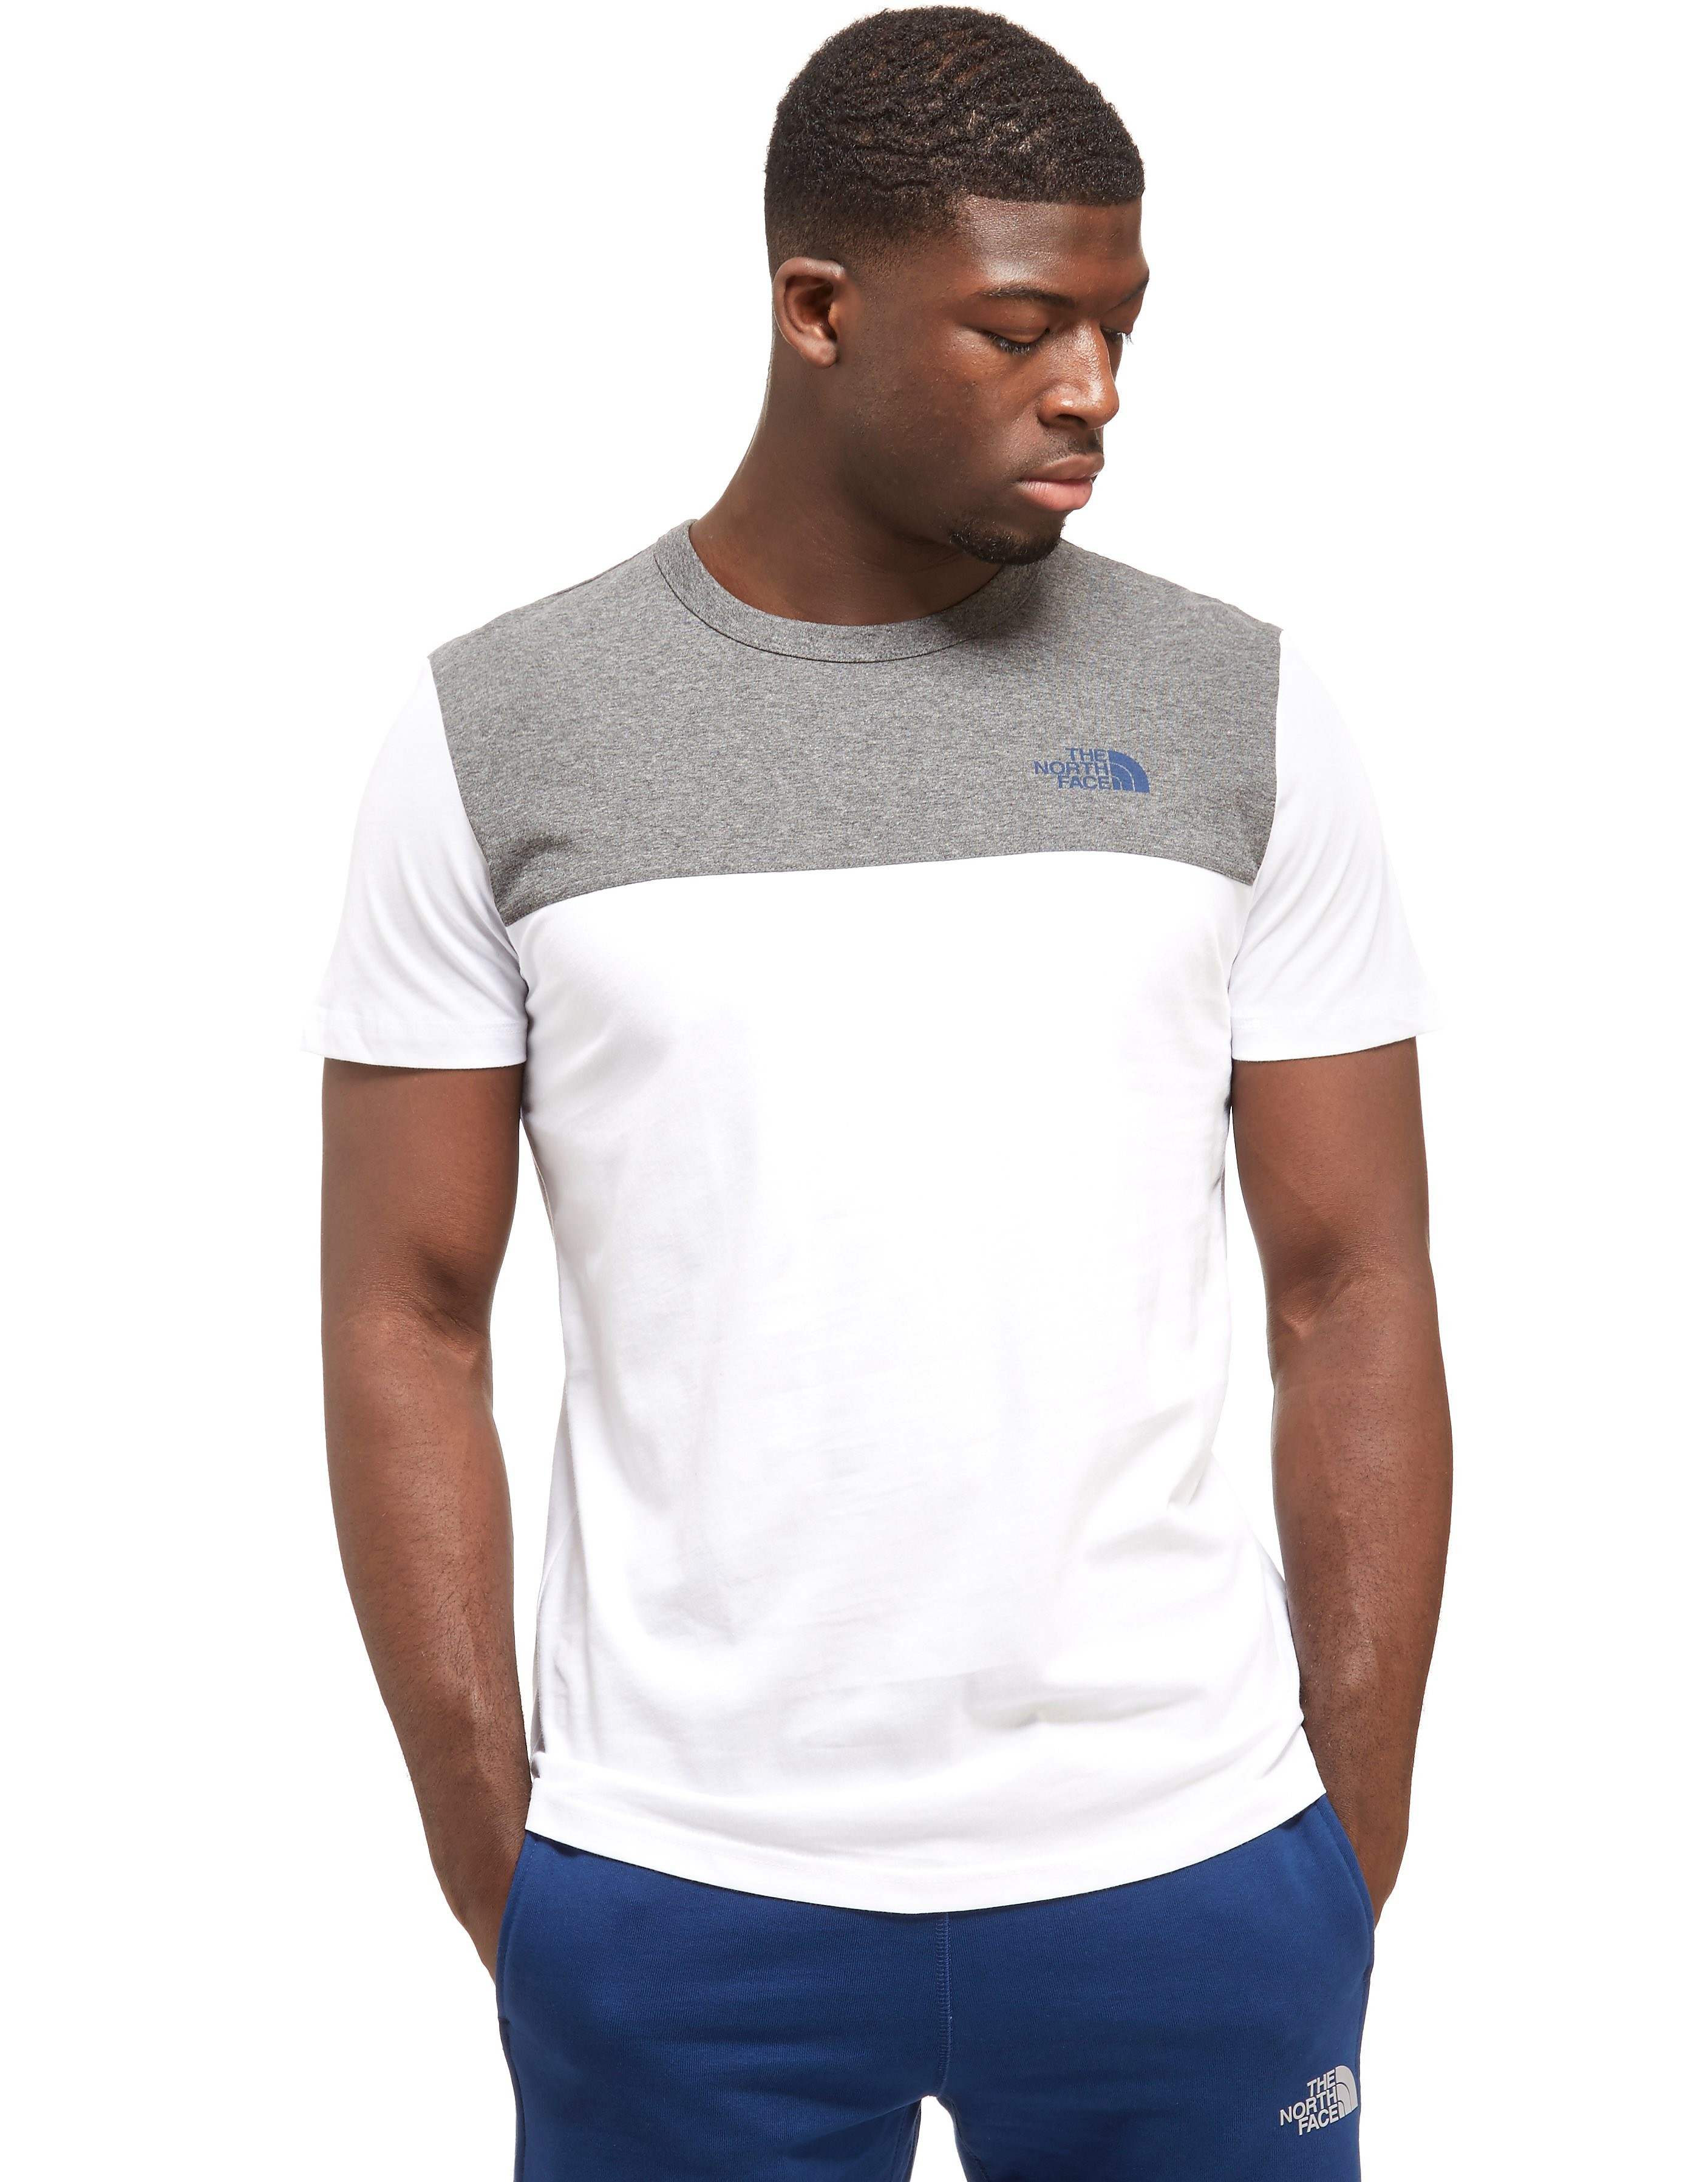 The North Face Colour Block T-shirt